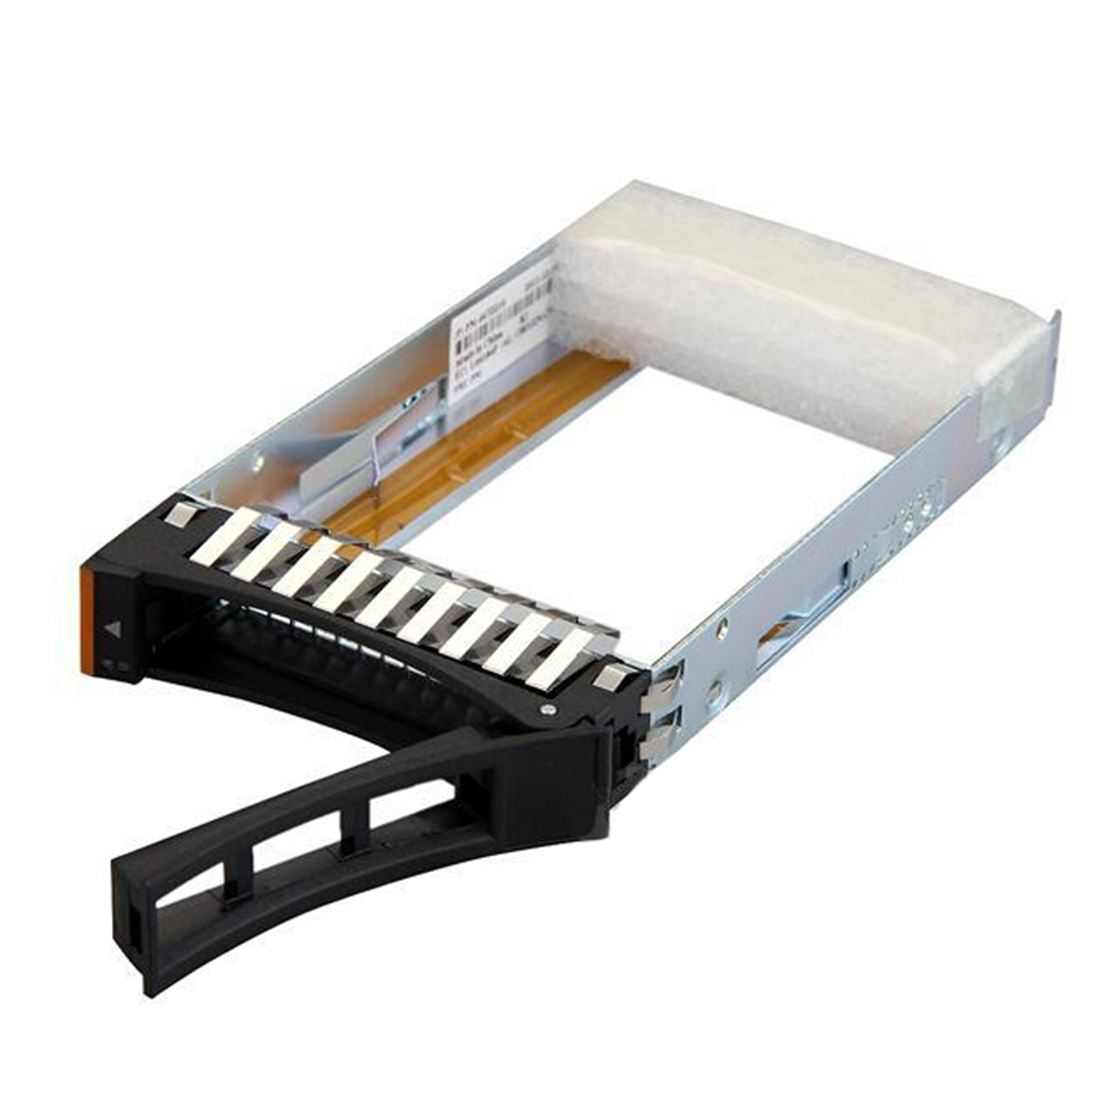 Hot Sale 2.5 Inch SAS SATA Server HDD Hard Drive Bay Tray Bracket Caddy For IBM Drives 44T2216 high quality<br><br>Aliexpress